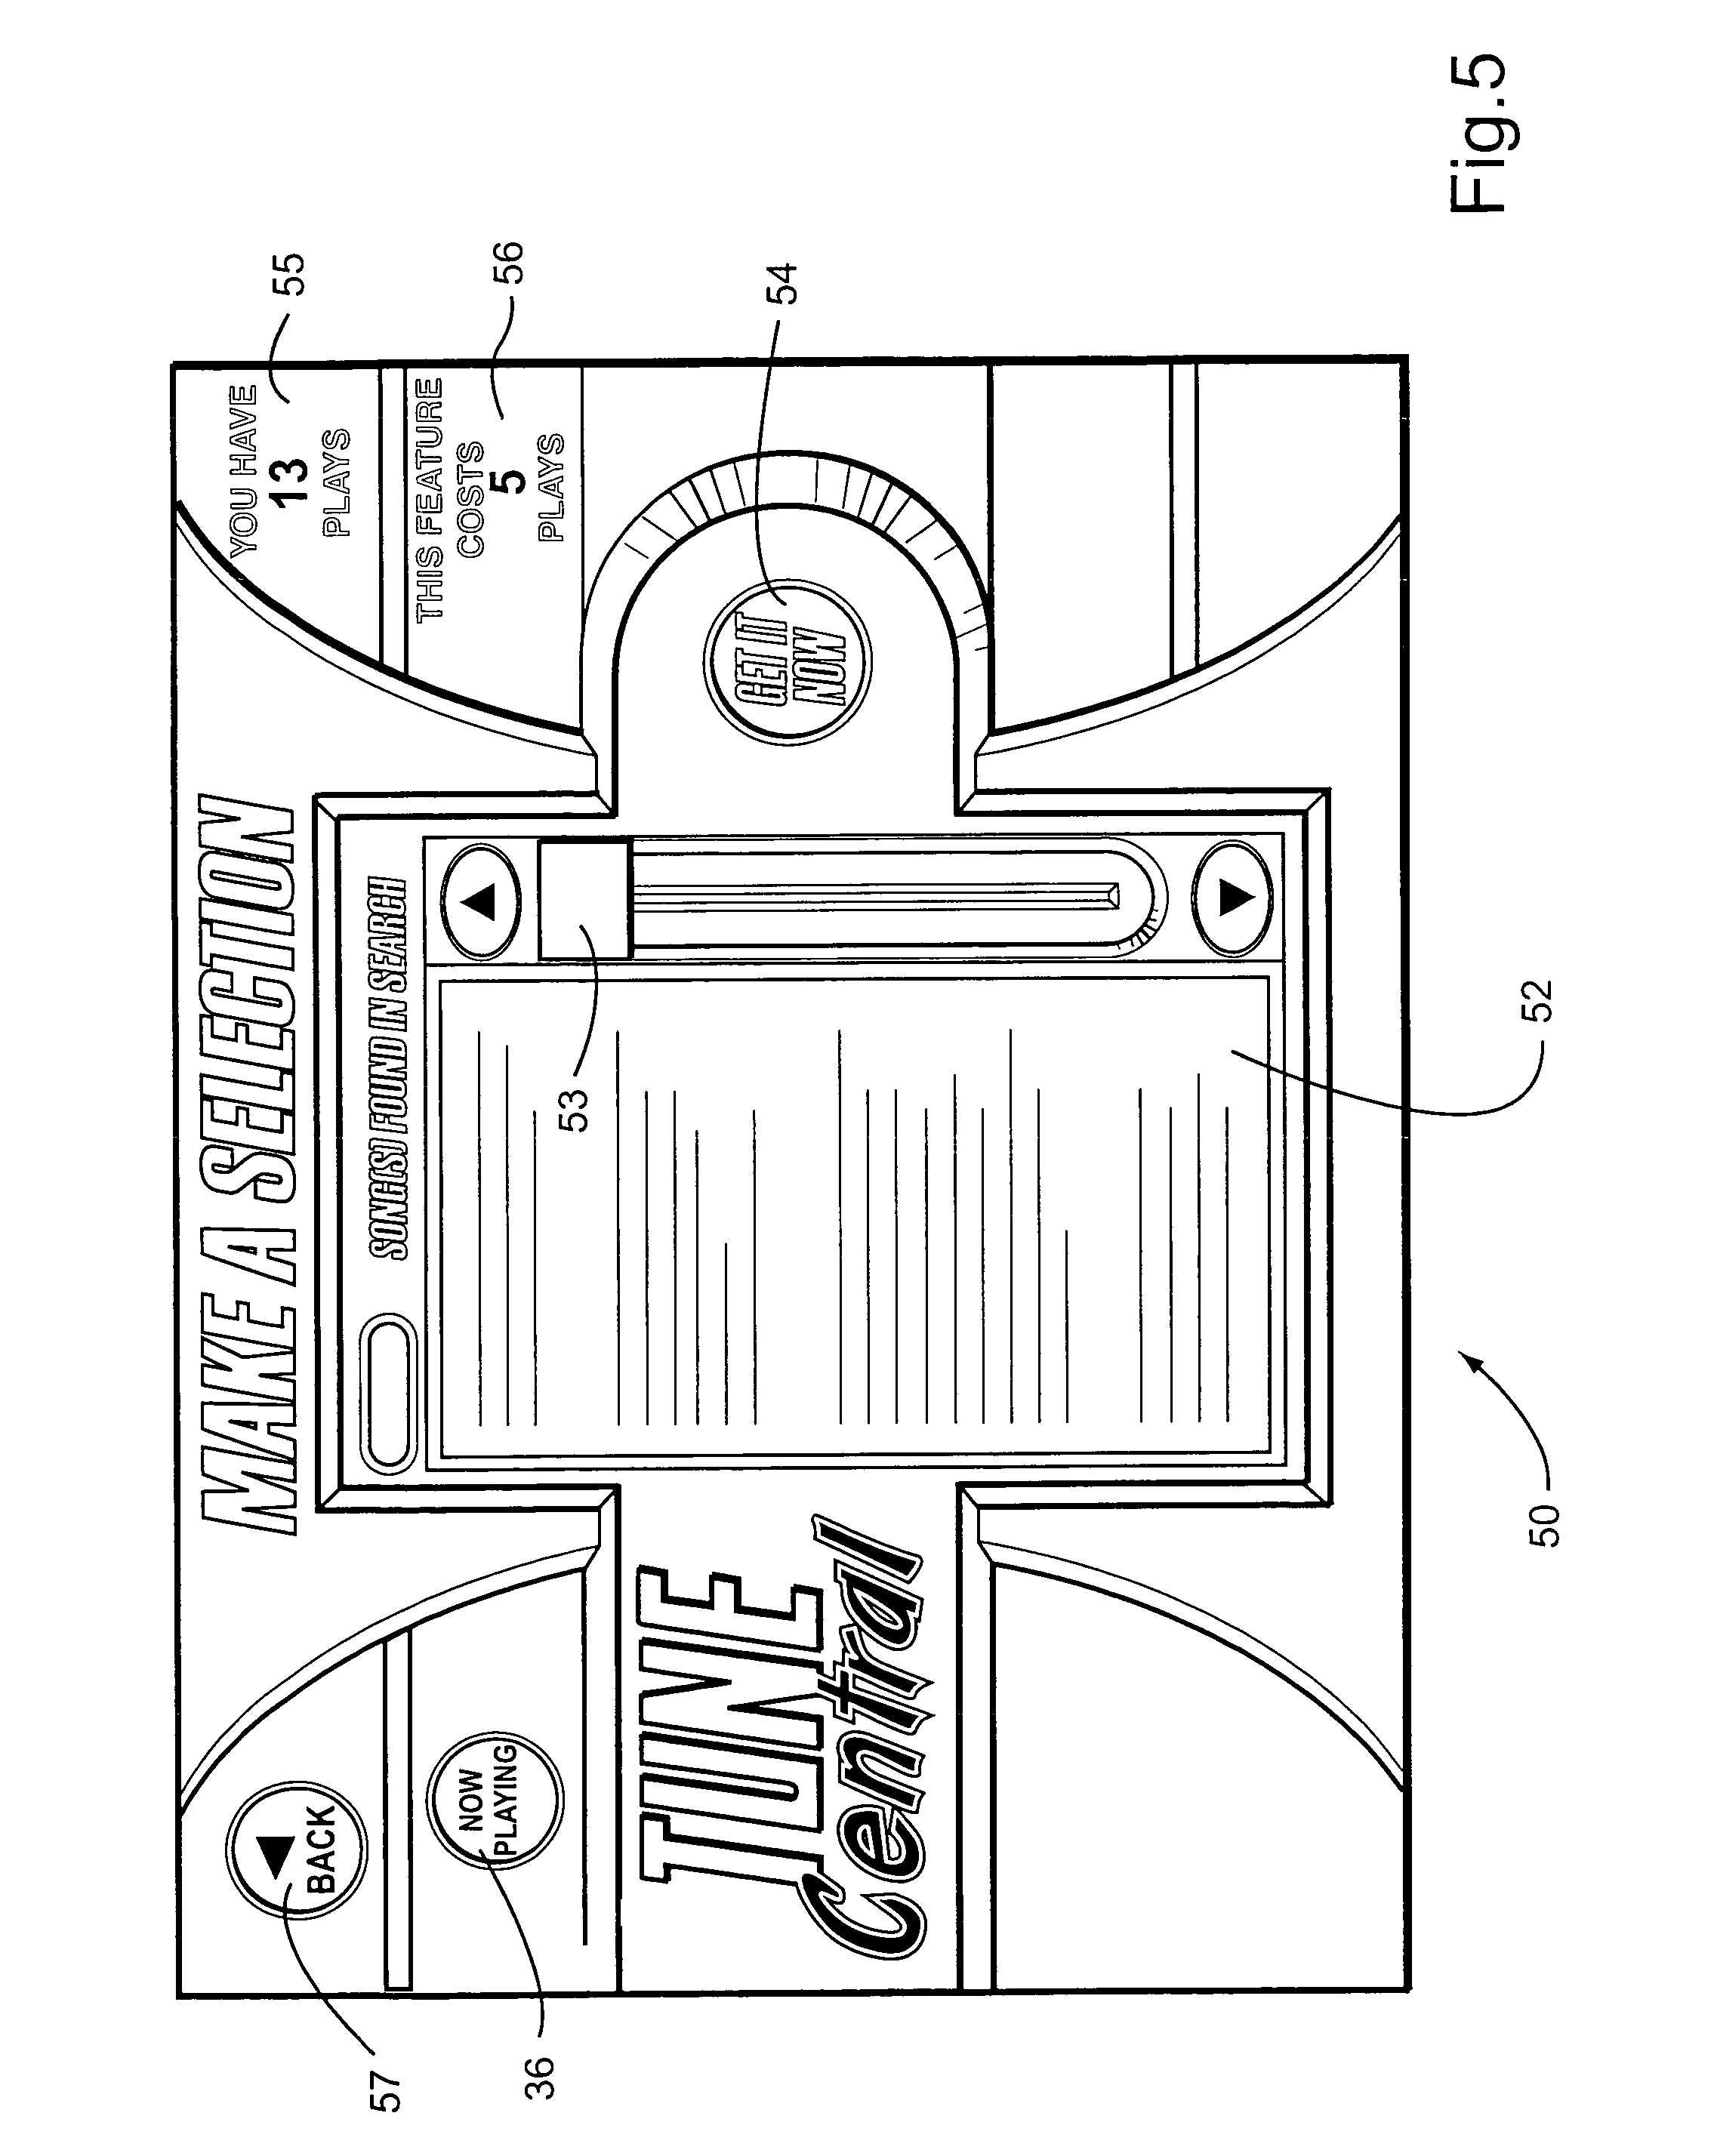 Patent US8103589 - Digital downloading jukebox system with central ...